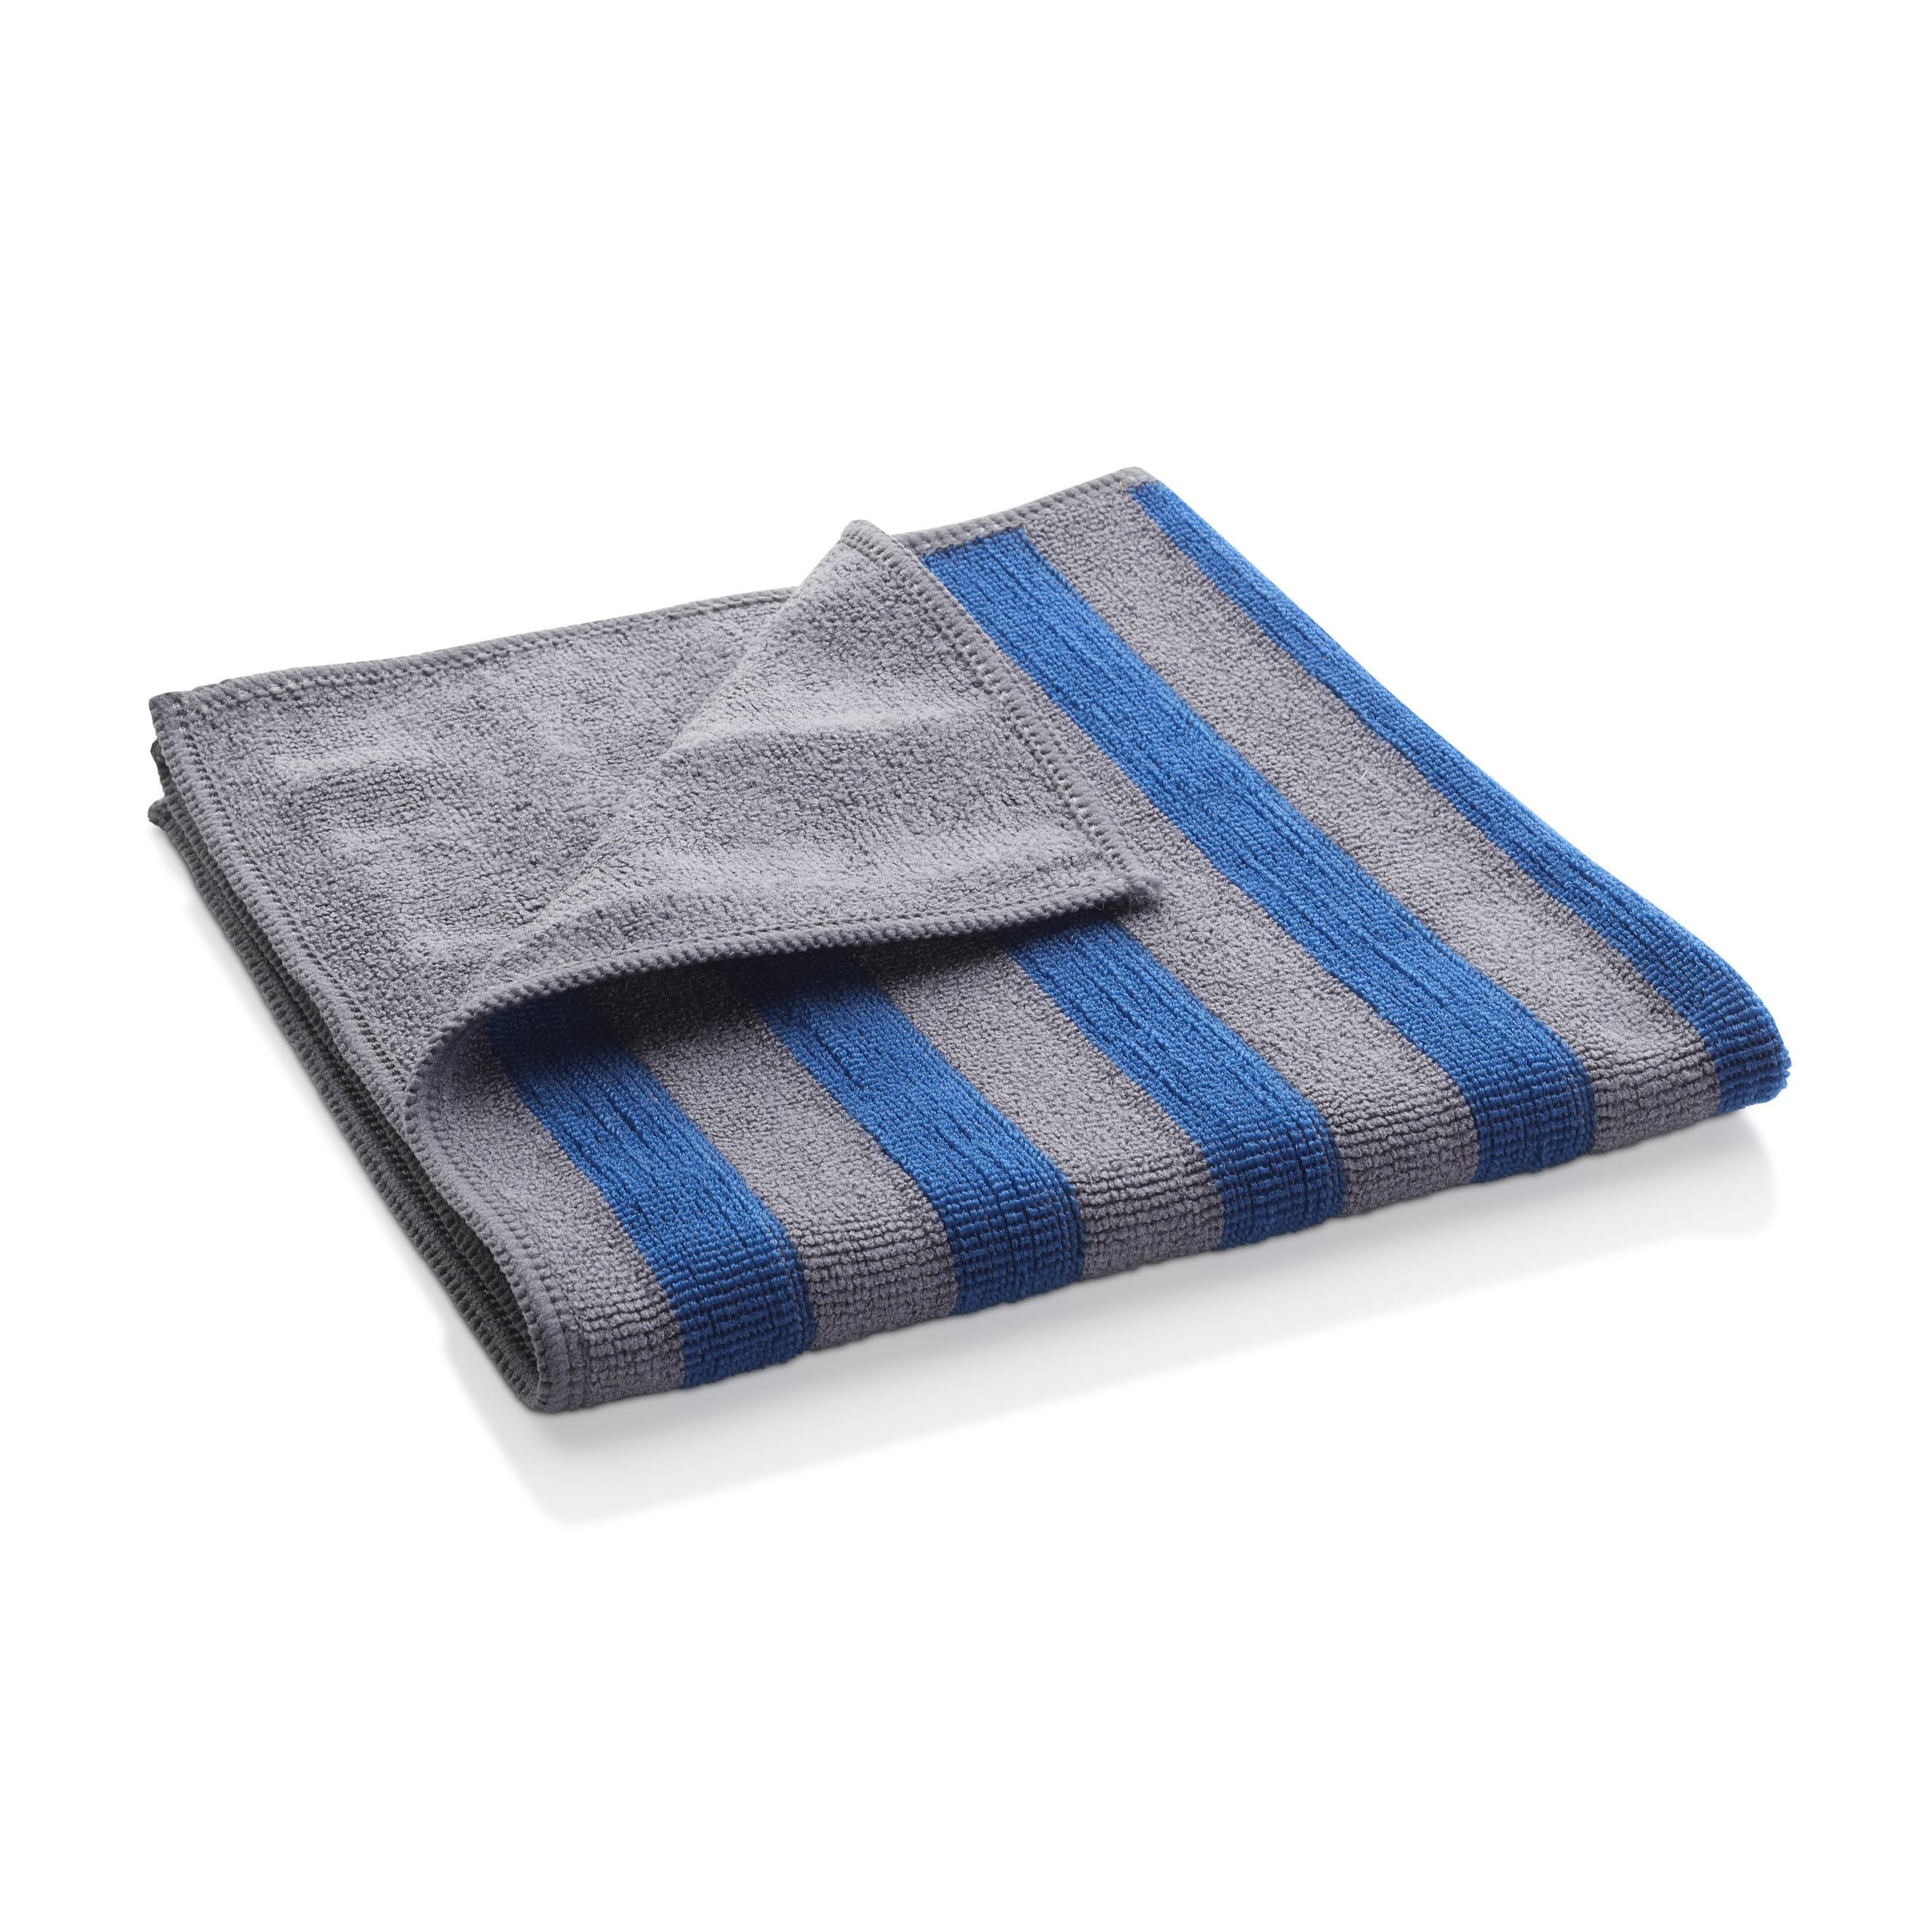 E-Cloth Range & Stovetop Cleaning Cloth - 2 Cloths